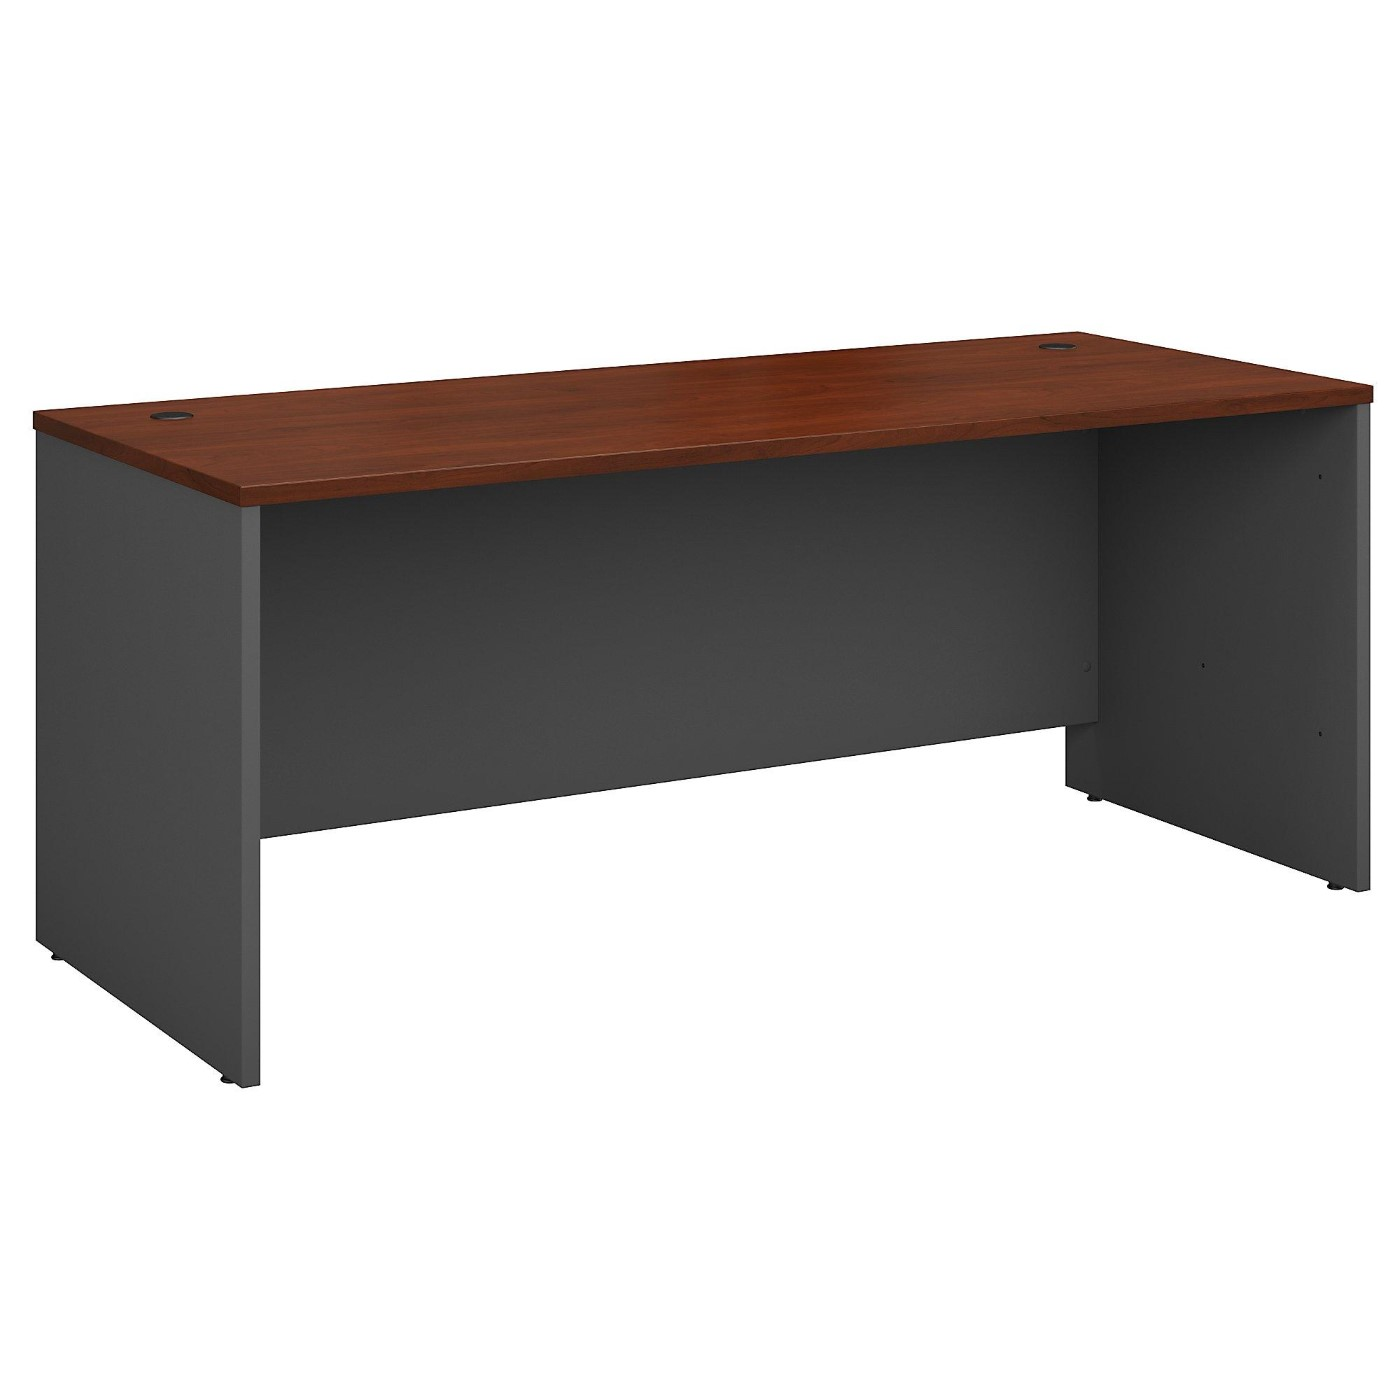 <font color=#c60><b>BUSH BUSINESS FURNITURE SERIES C 72W X 30D OFFICE DESK. FREE SHIPPING</font></b>